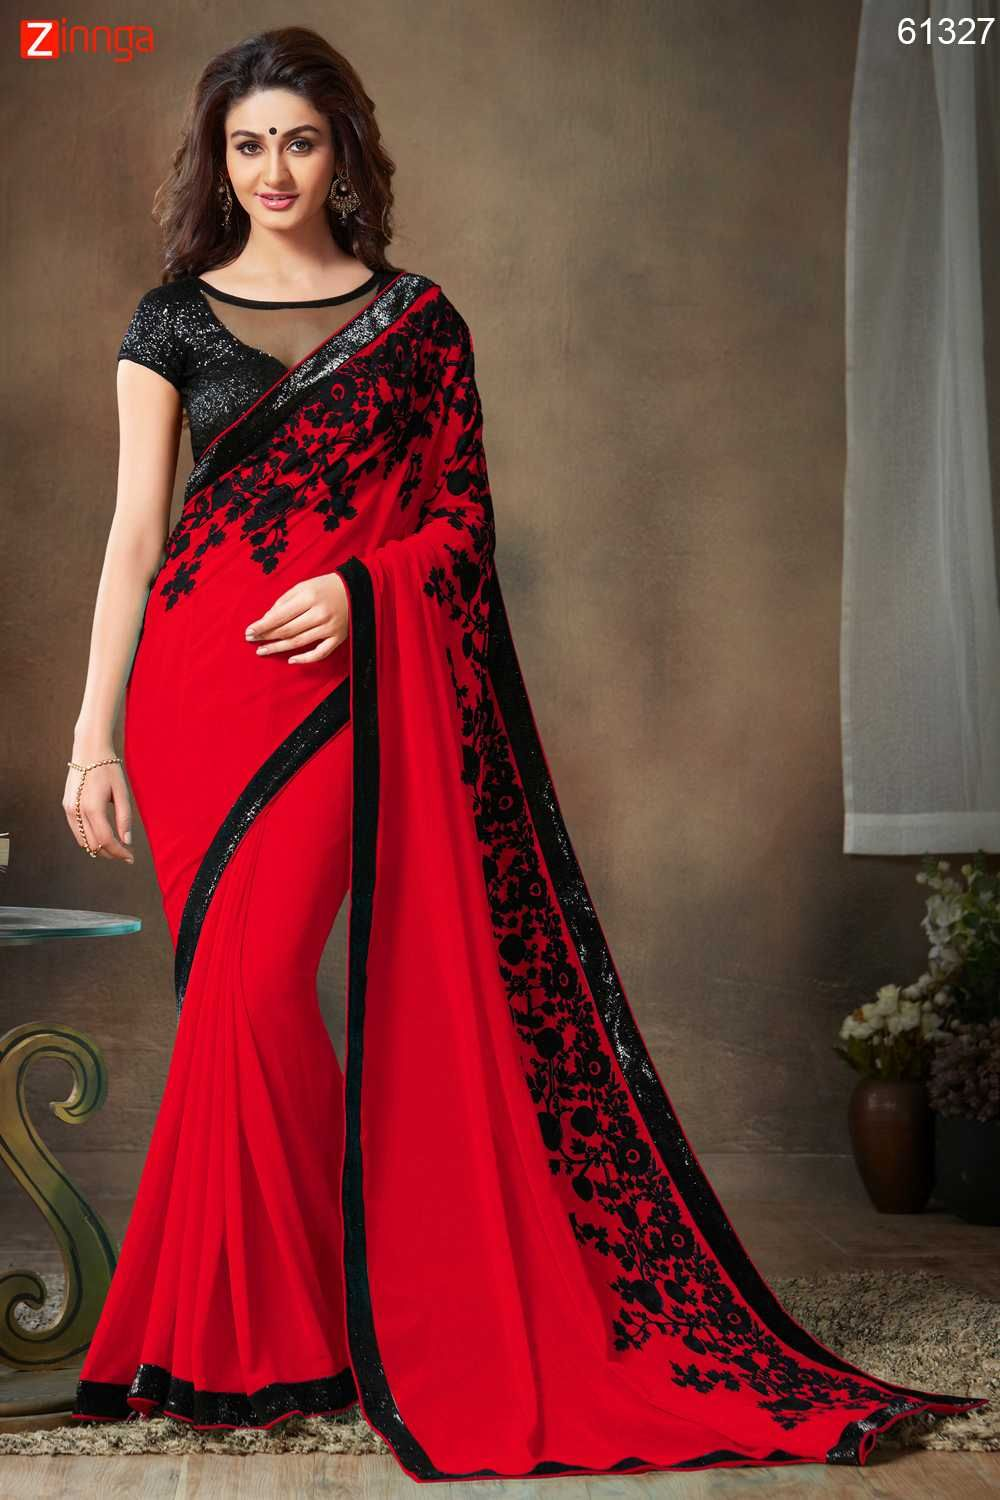 a53aa7e4153ee6 Pretty Embroidered Pallu Saree in Deep Scarlet Color Message call WhatsApp  at +91-9246261661 or Visit www.zinnga.com